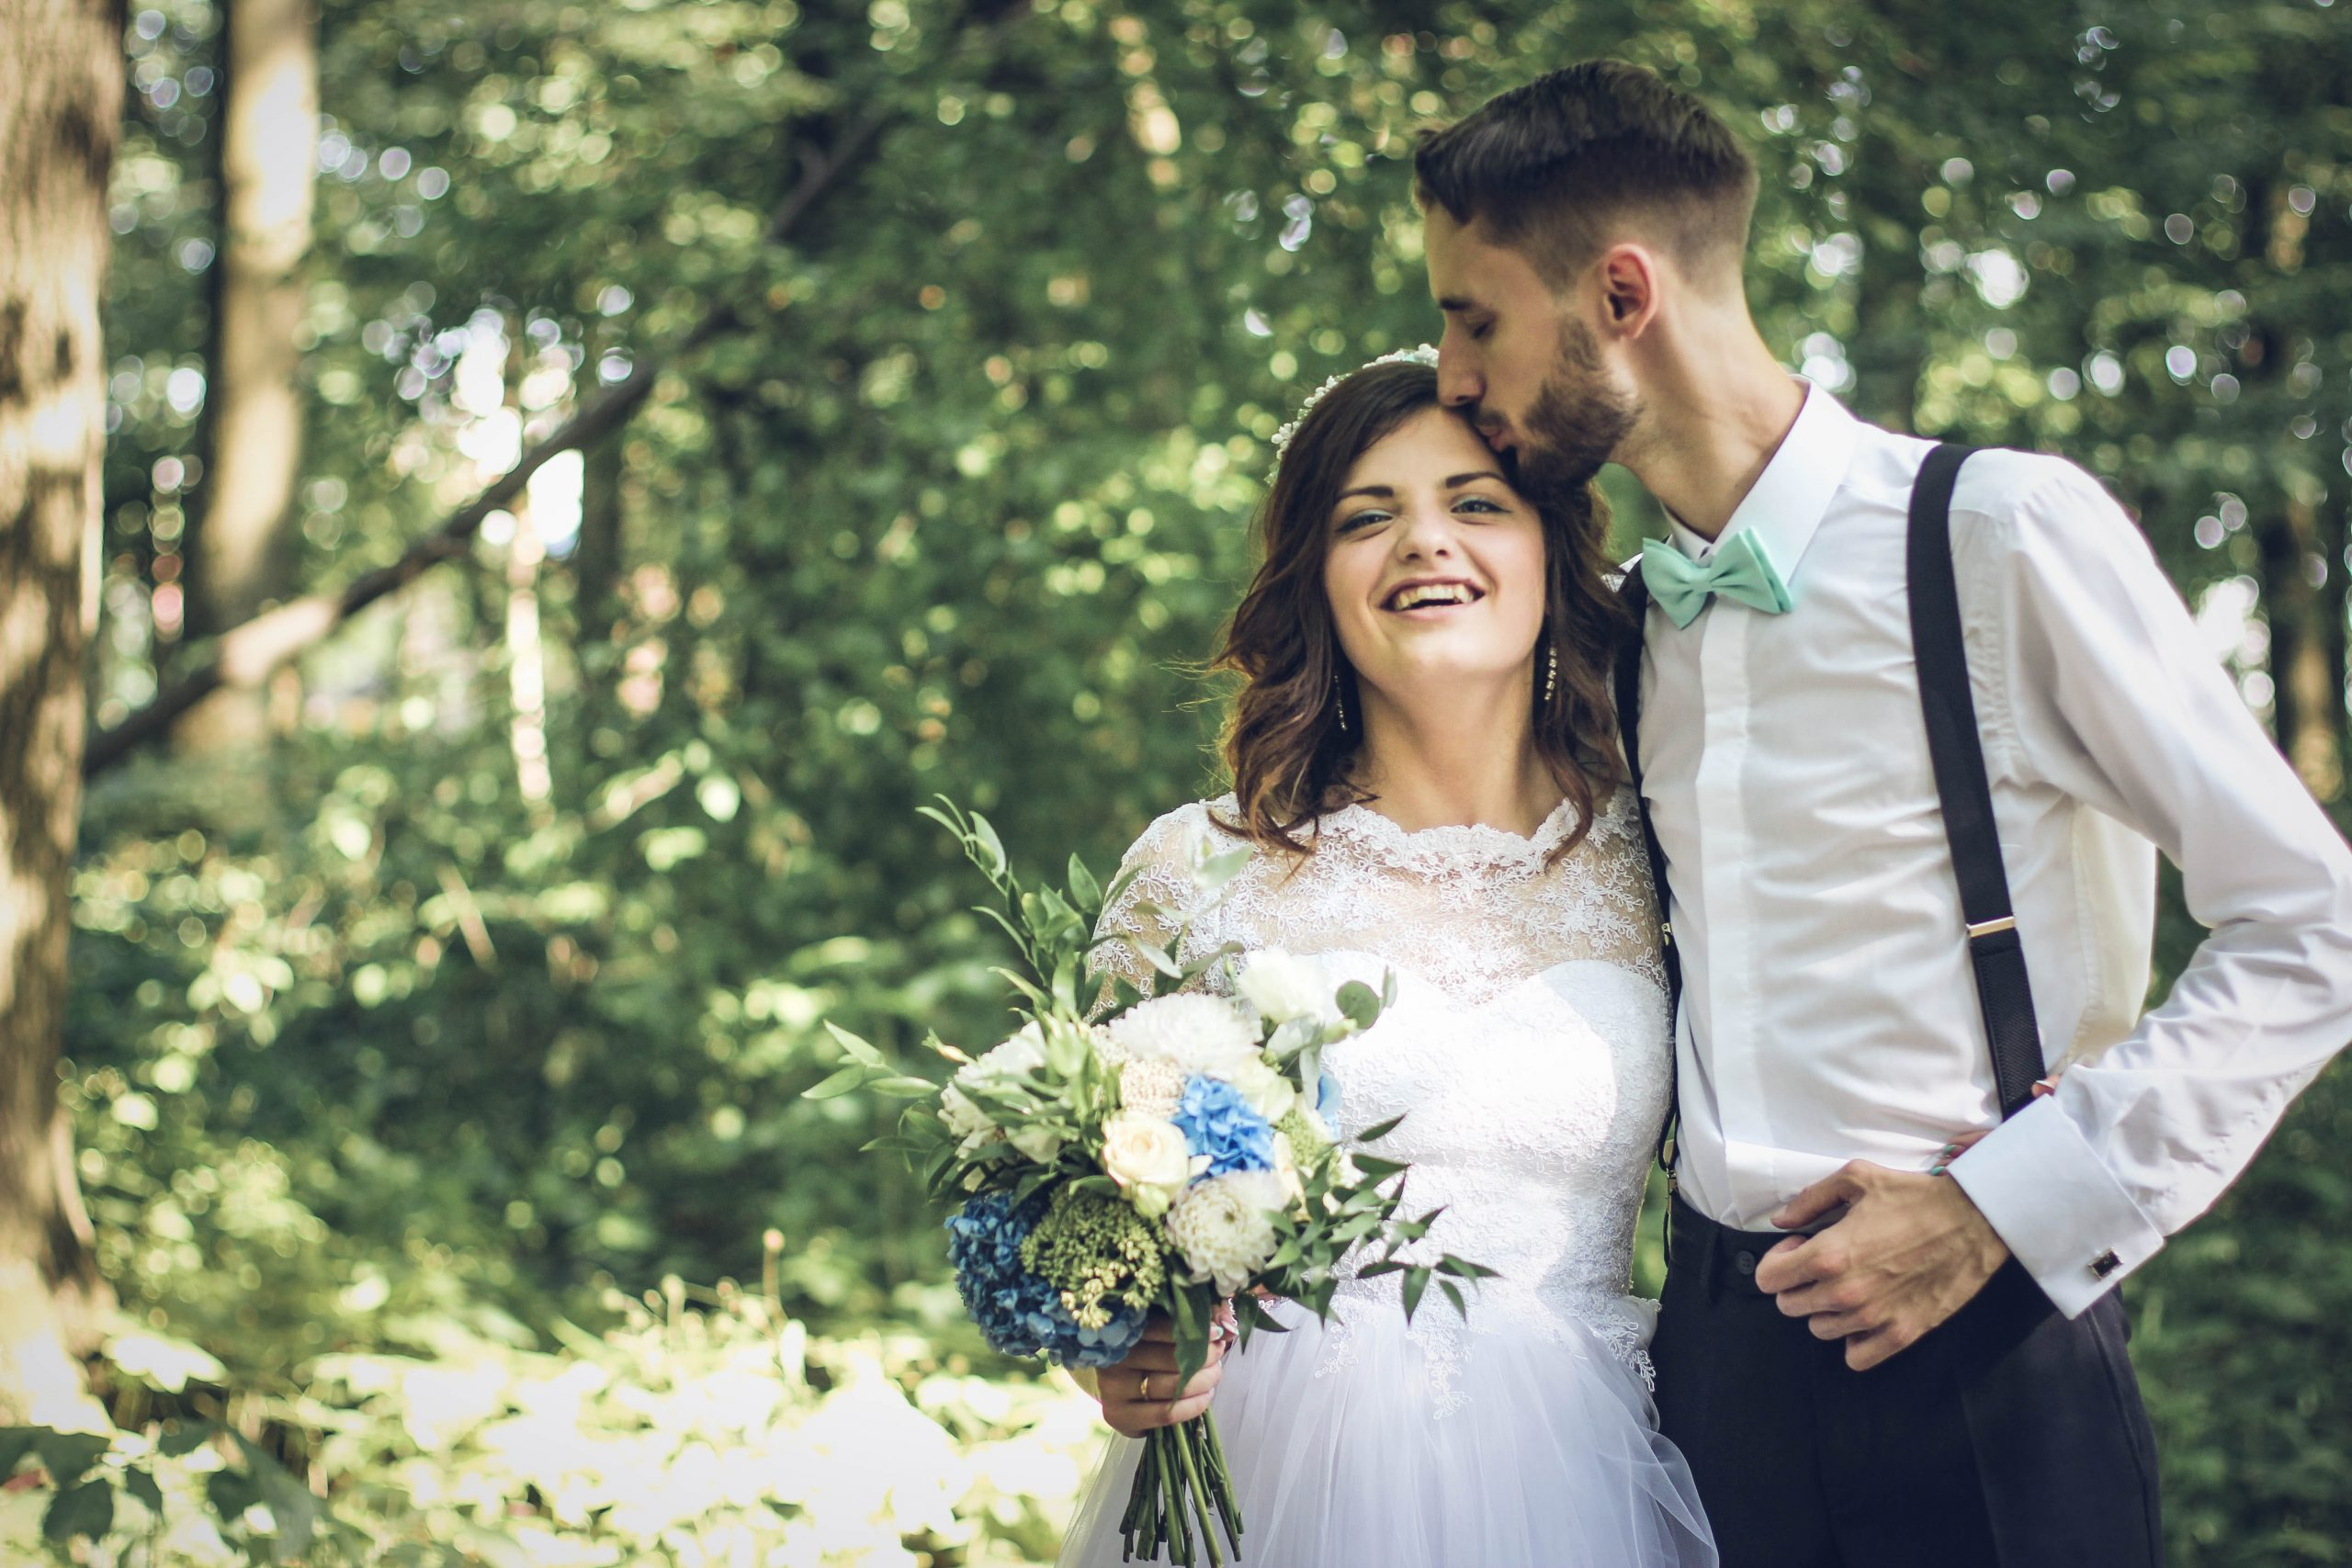 6 Steps To Planning Your Wedding